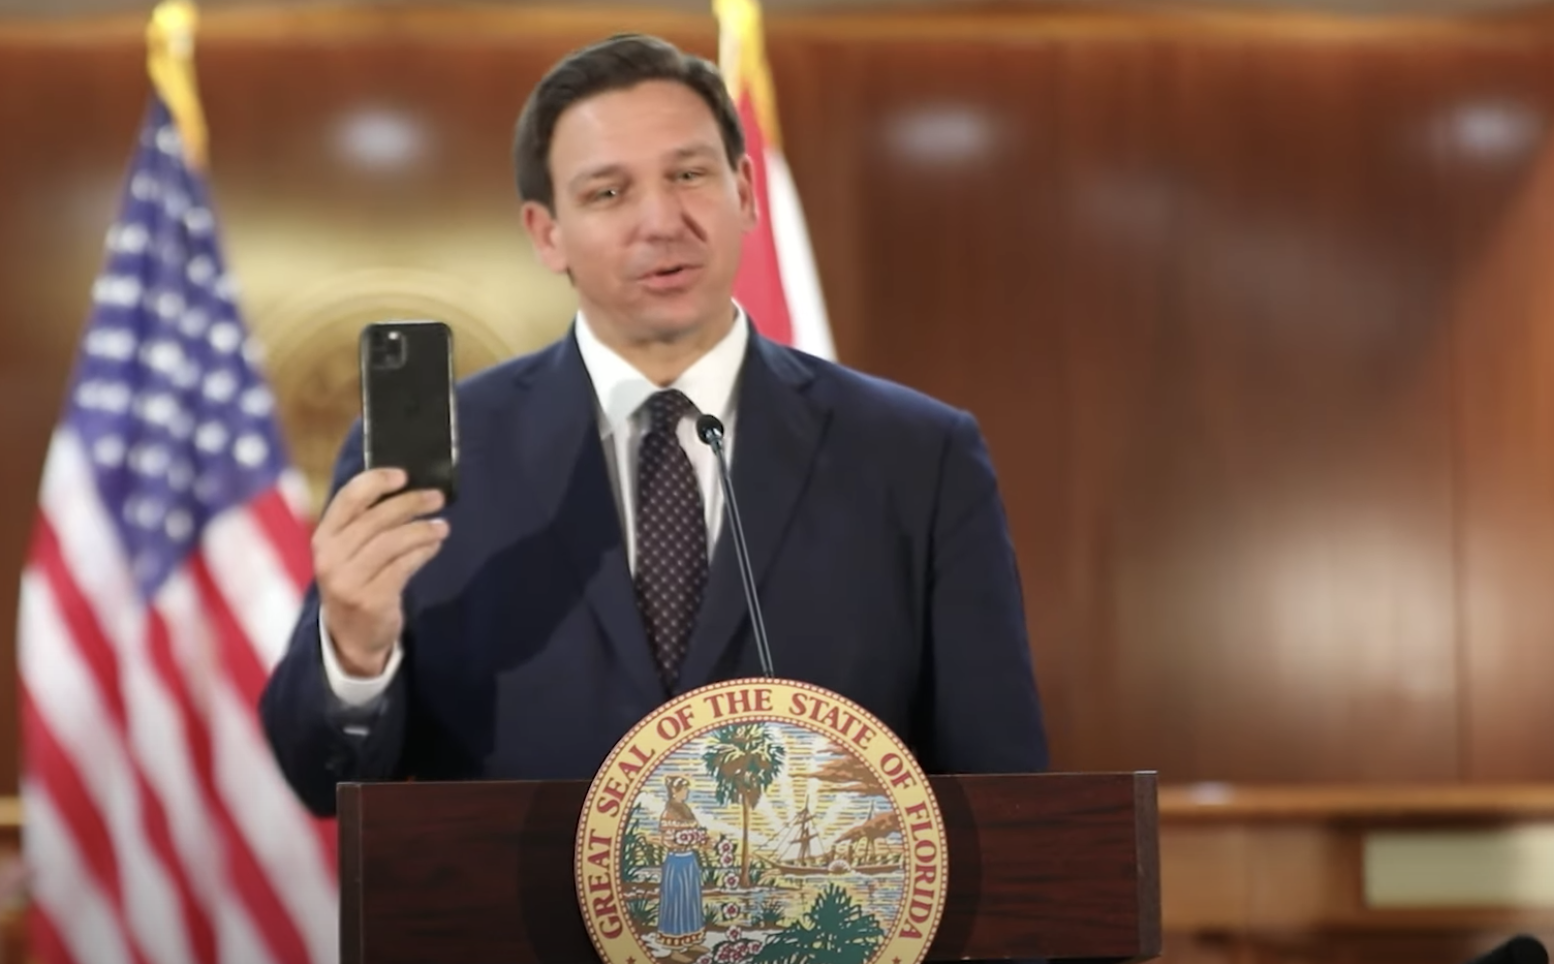 JUICE — Florida Politics' Juicy Read — 2.22.2021 — DeSantis Planning 2024 Presidential Run? — Challenging DeSantis in 2022 — CPAC – Rubio, Scott, Gaetz — More…